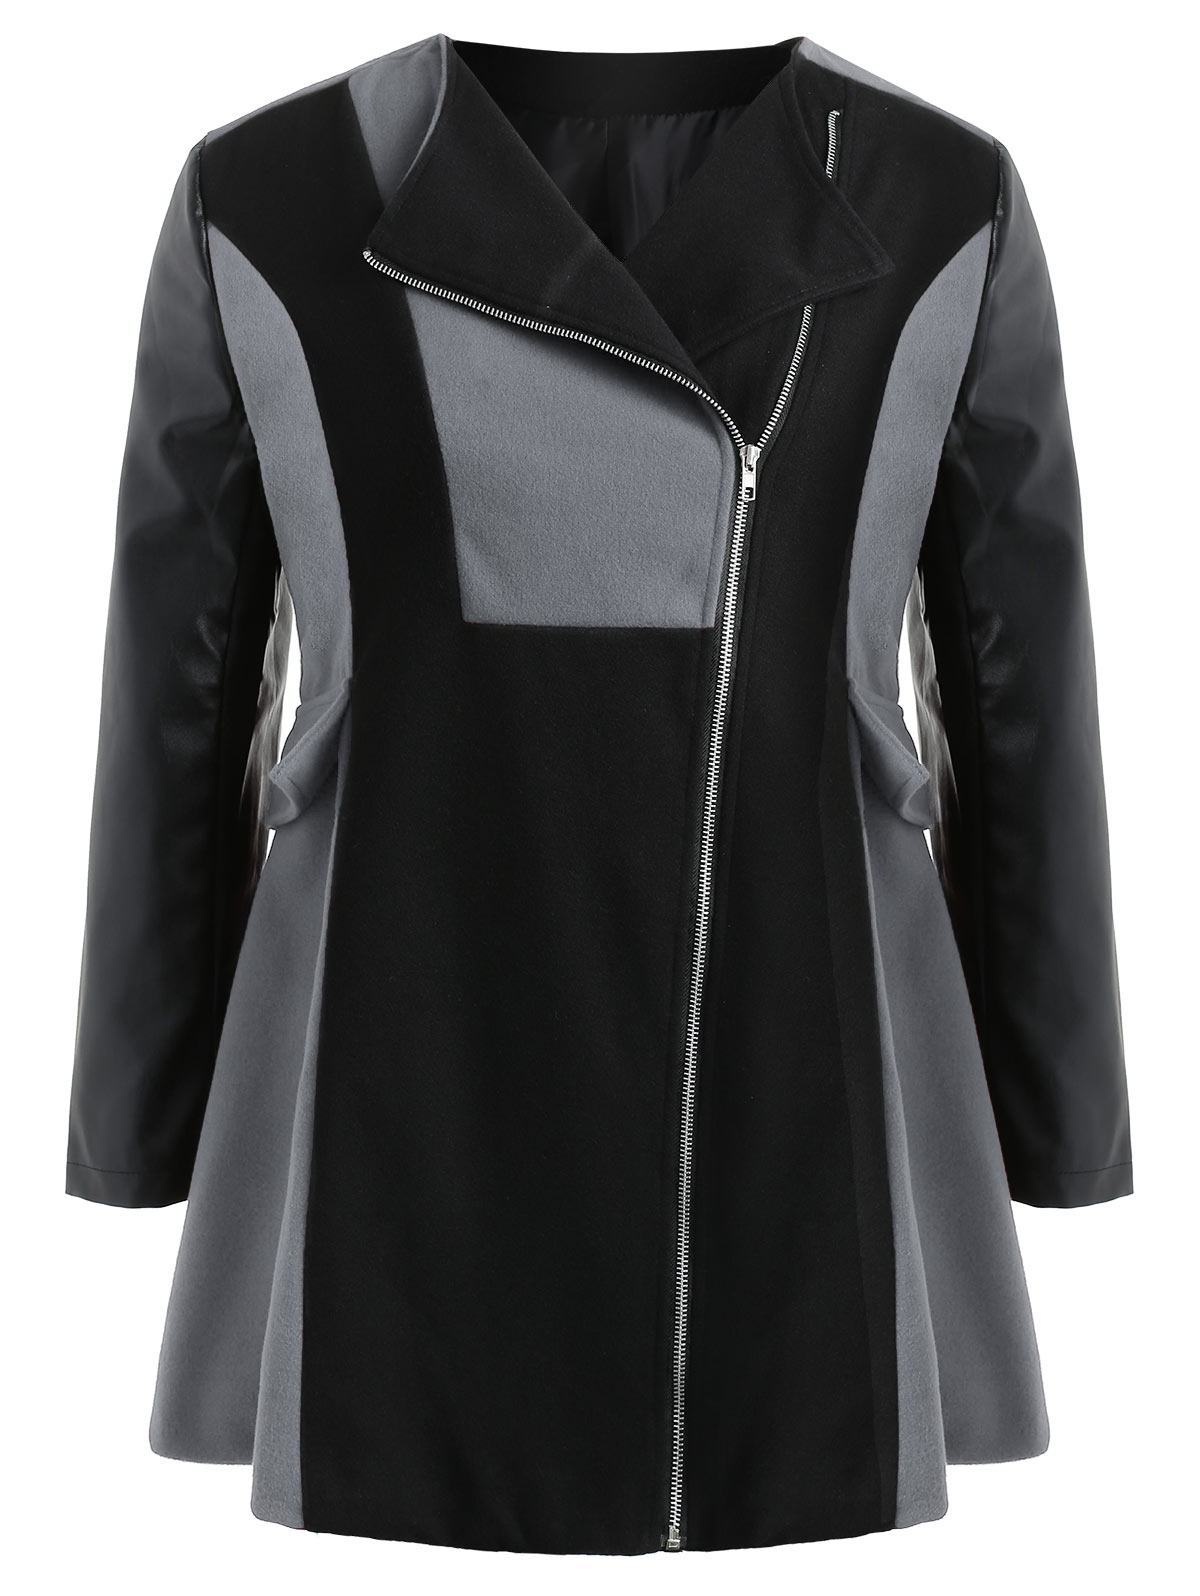 5f1a51d1d78d0 Detail Feedback Questions about Gamiss Plus Size Two Tone Zip Coat ...